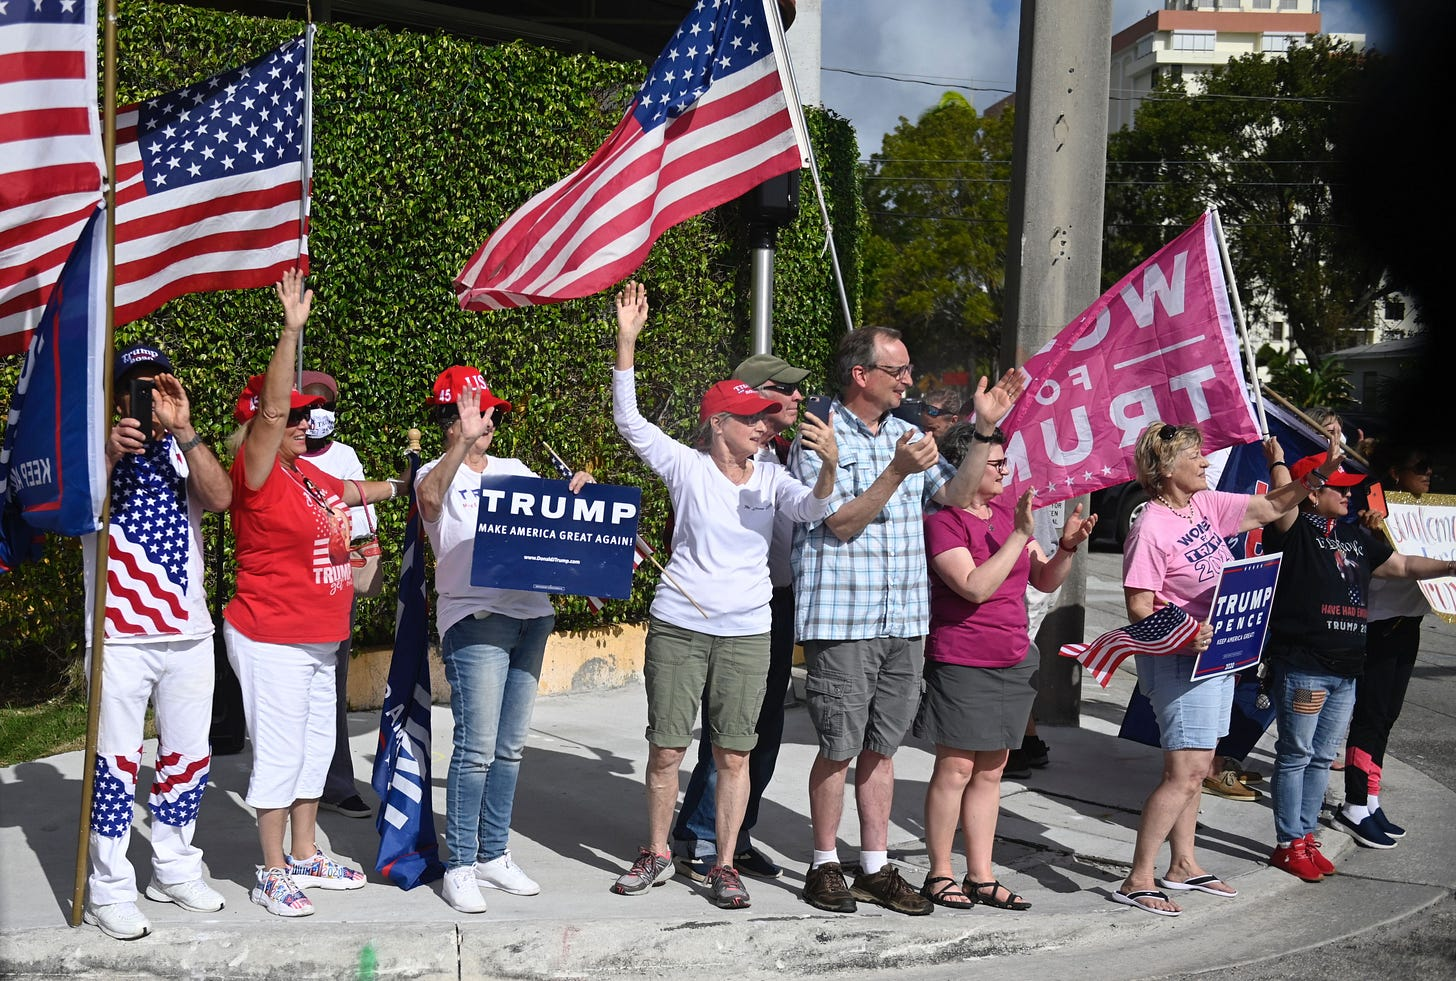 Supporters line the street as US president Donald Trump departs in West Palm Beach, Florida on December 31, 2020, as he travels back to Washington, DC after his Christmas holiday break in Mar-a-Lago. (Photo by ANDREW CABALLERO-REYNOLDS / AFP) (Photo by ANDREW CABALLERO-REYNOLDS/AFP via Getty Images)